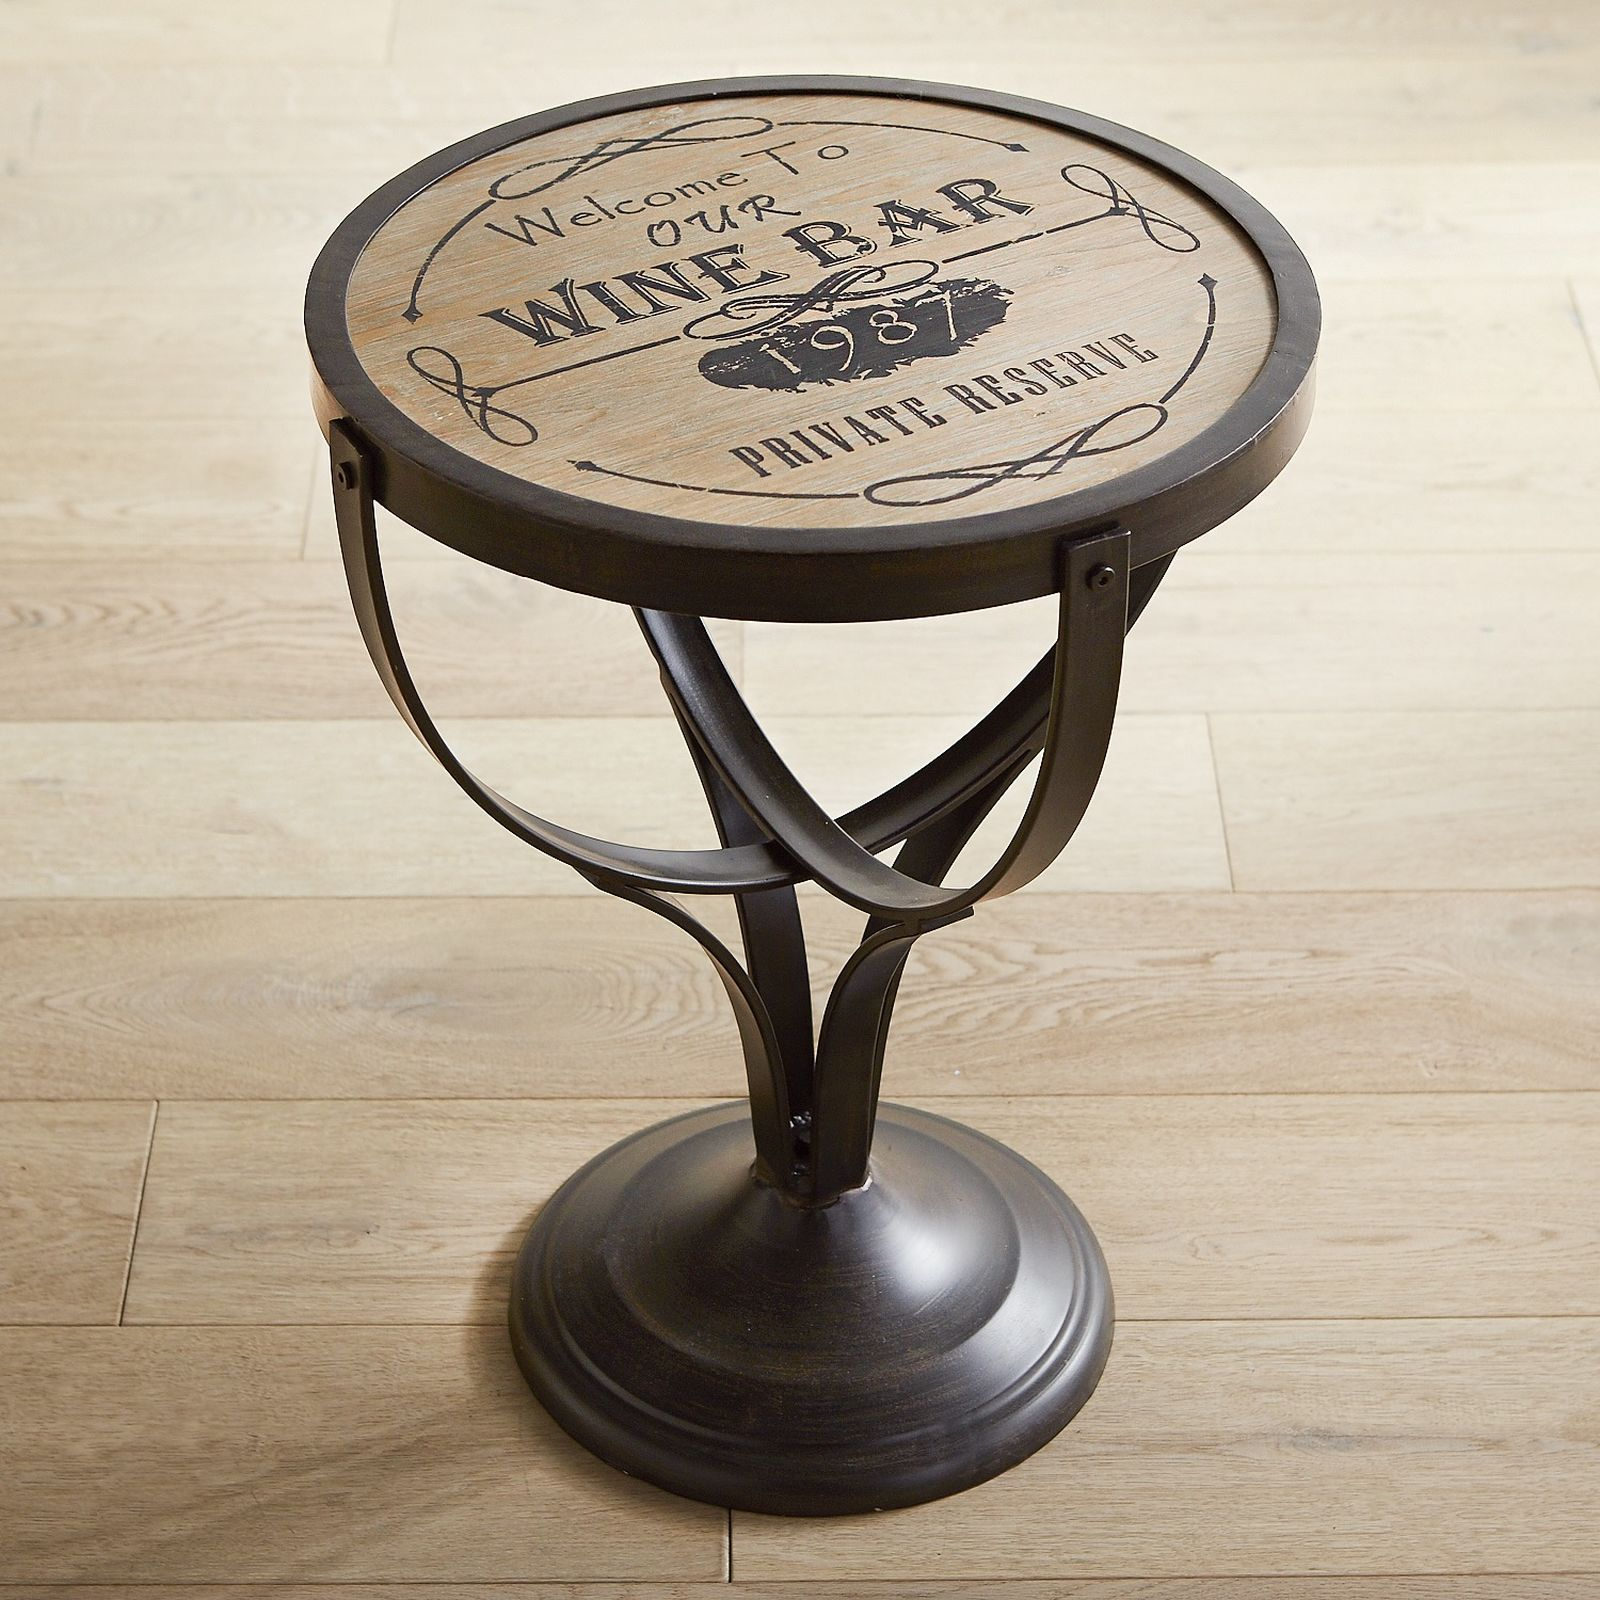 amusing wood accent table target html word butter contents tablet css kopen gram document tableau template public hotels coolblue mdn aanbieding mango training houder tablespoon